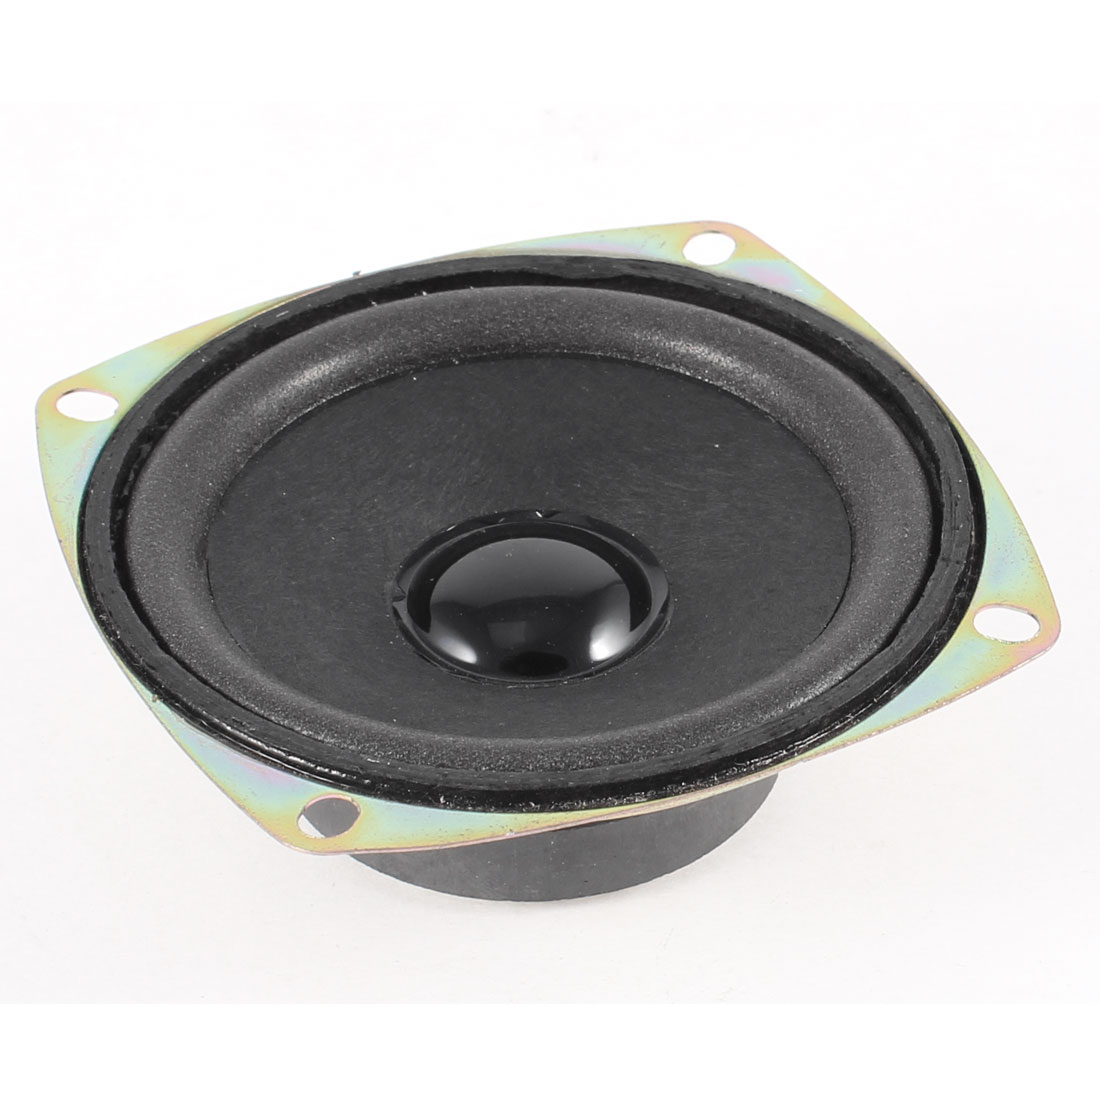 75mm External Magnet Toys Multimedia Speaker Tweeter Horn 4 Ohm 5W